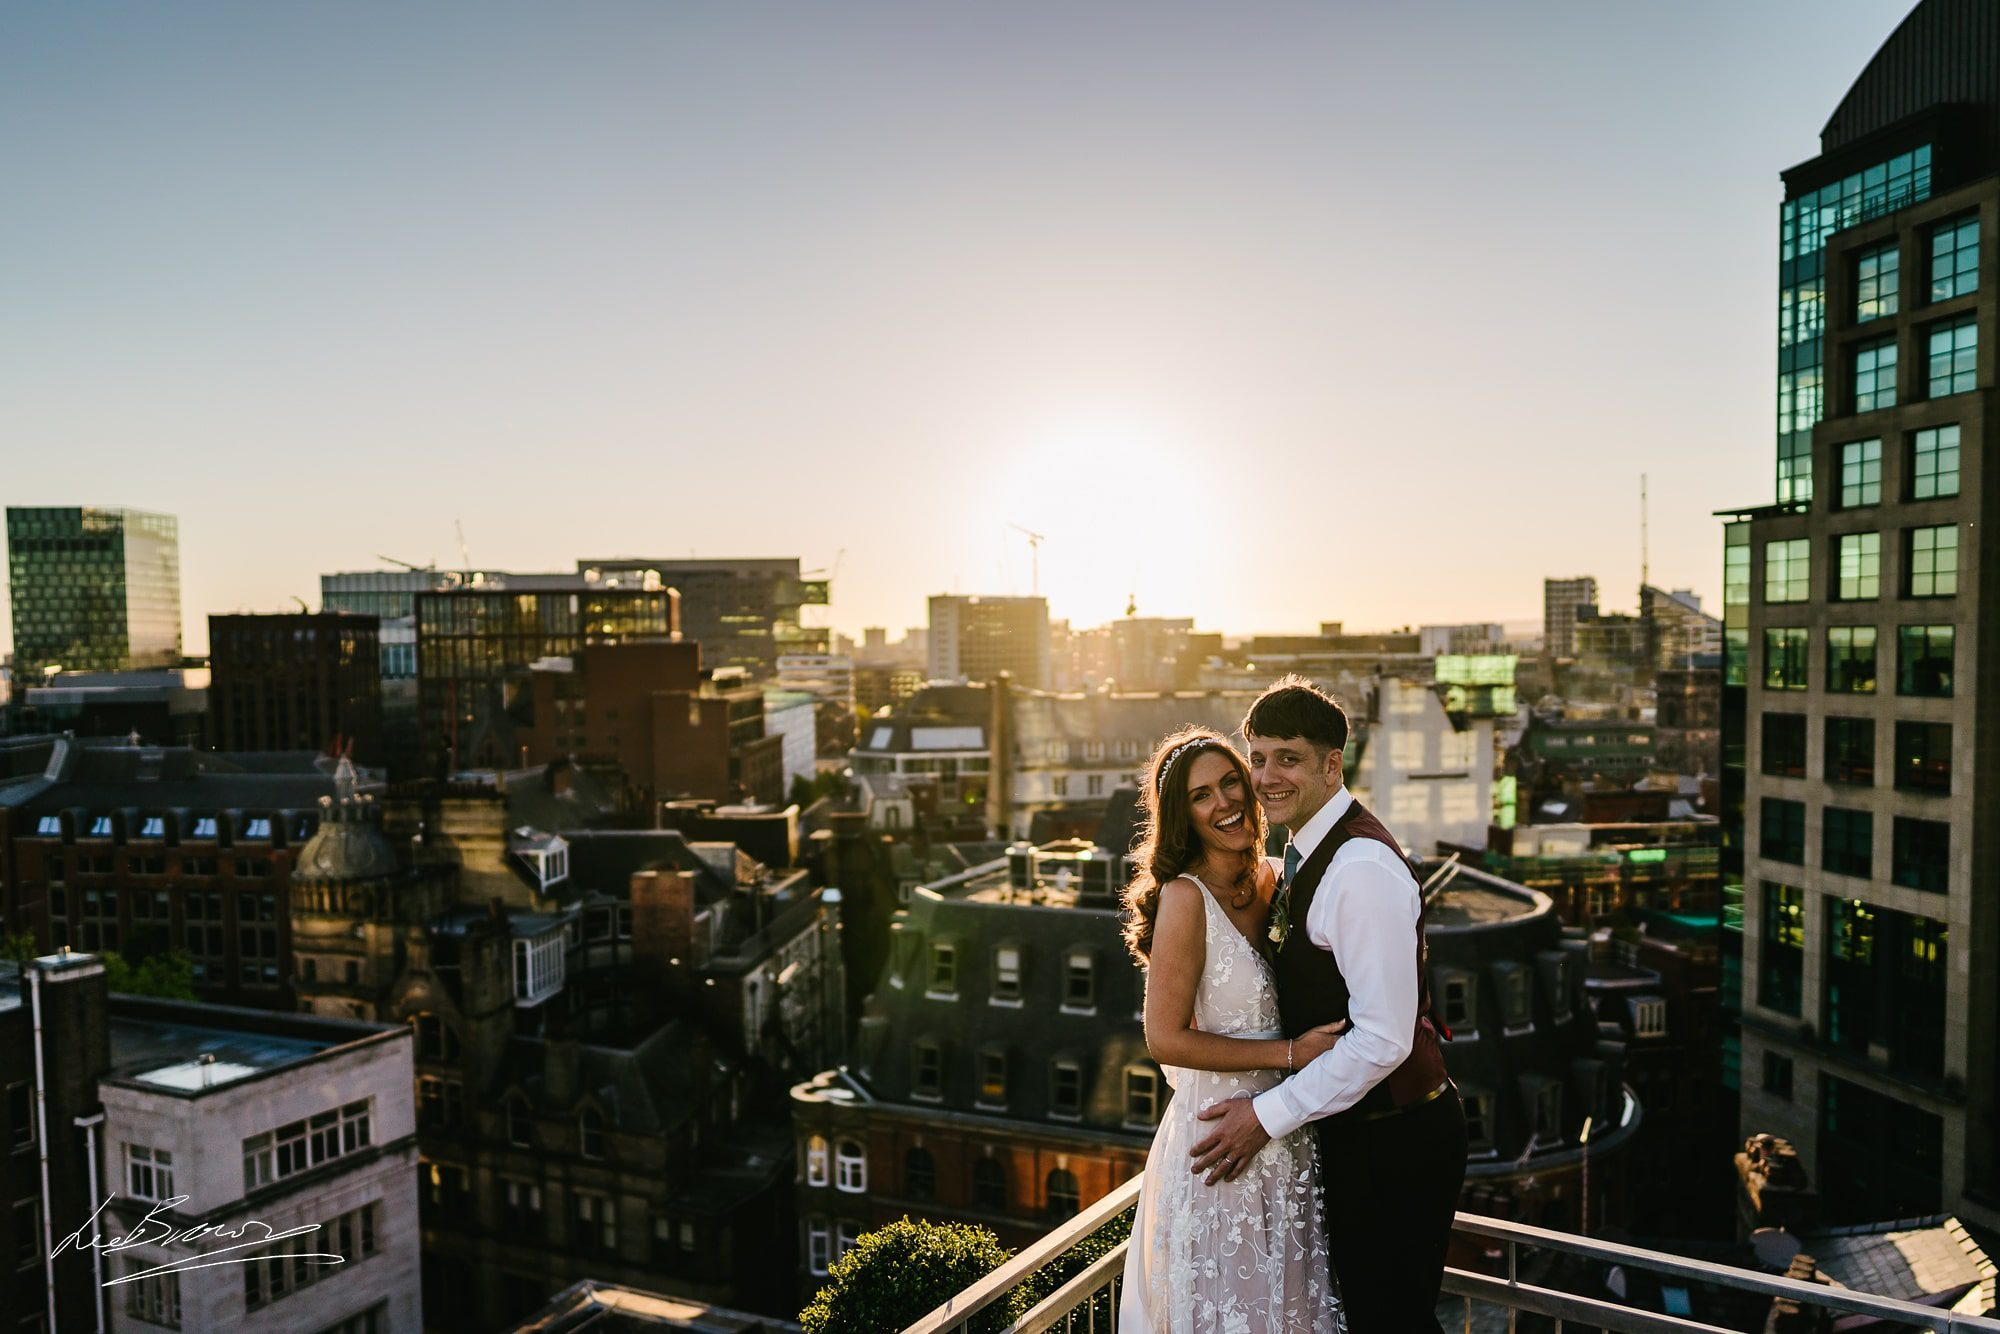 King Street Townhouse Wedding Photography – Natalie & Steven